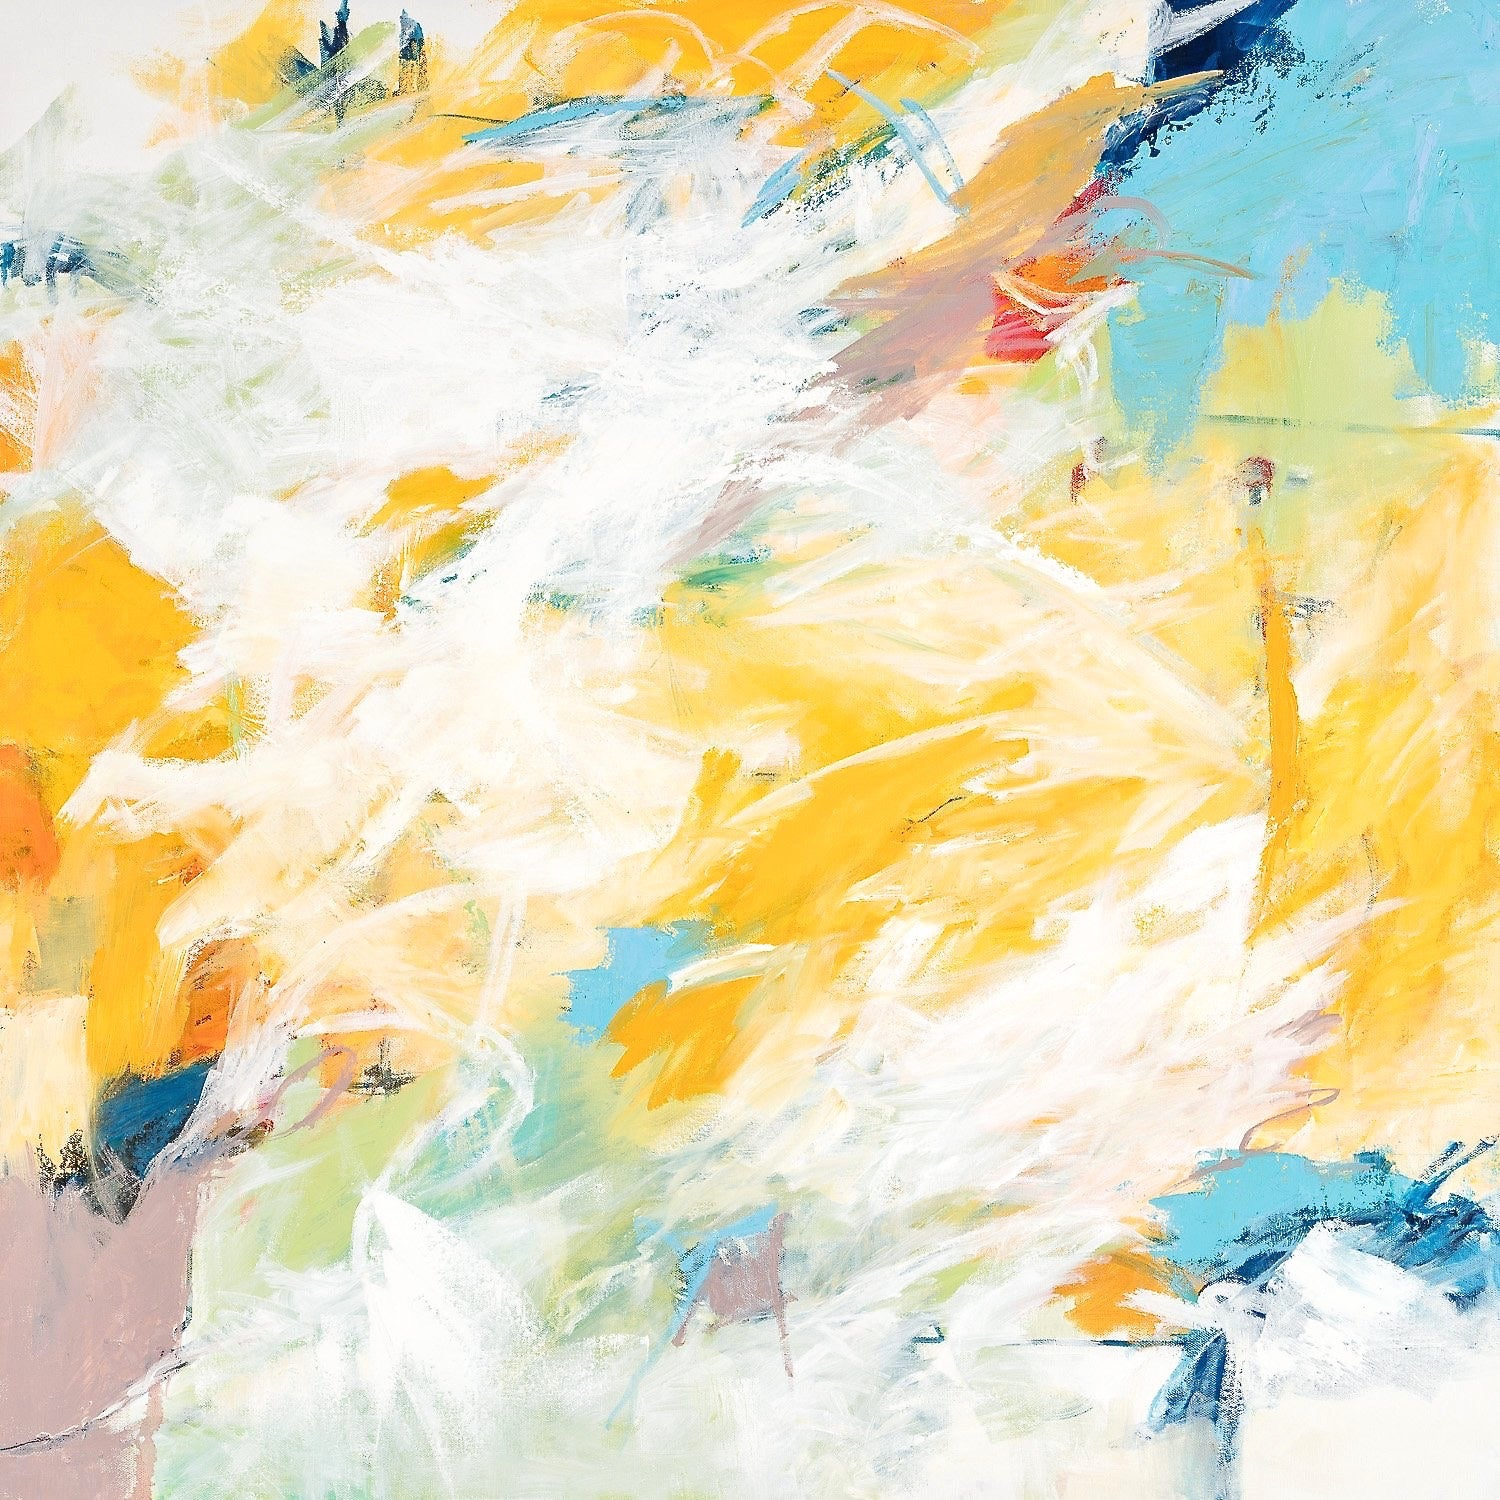 """""""Pools of Blue"""" Gestural Abstraction in Blue, White, Yellow, Orange and Black"""